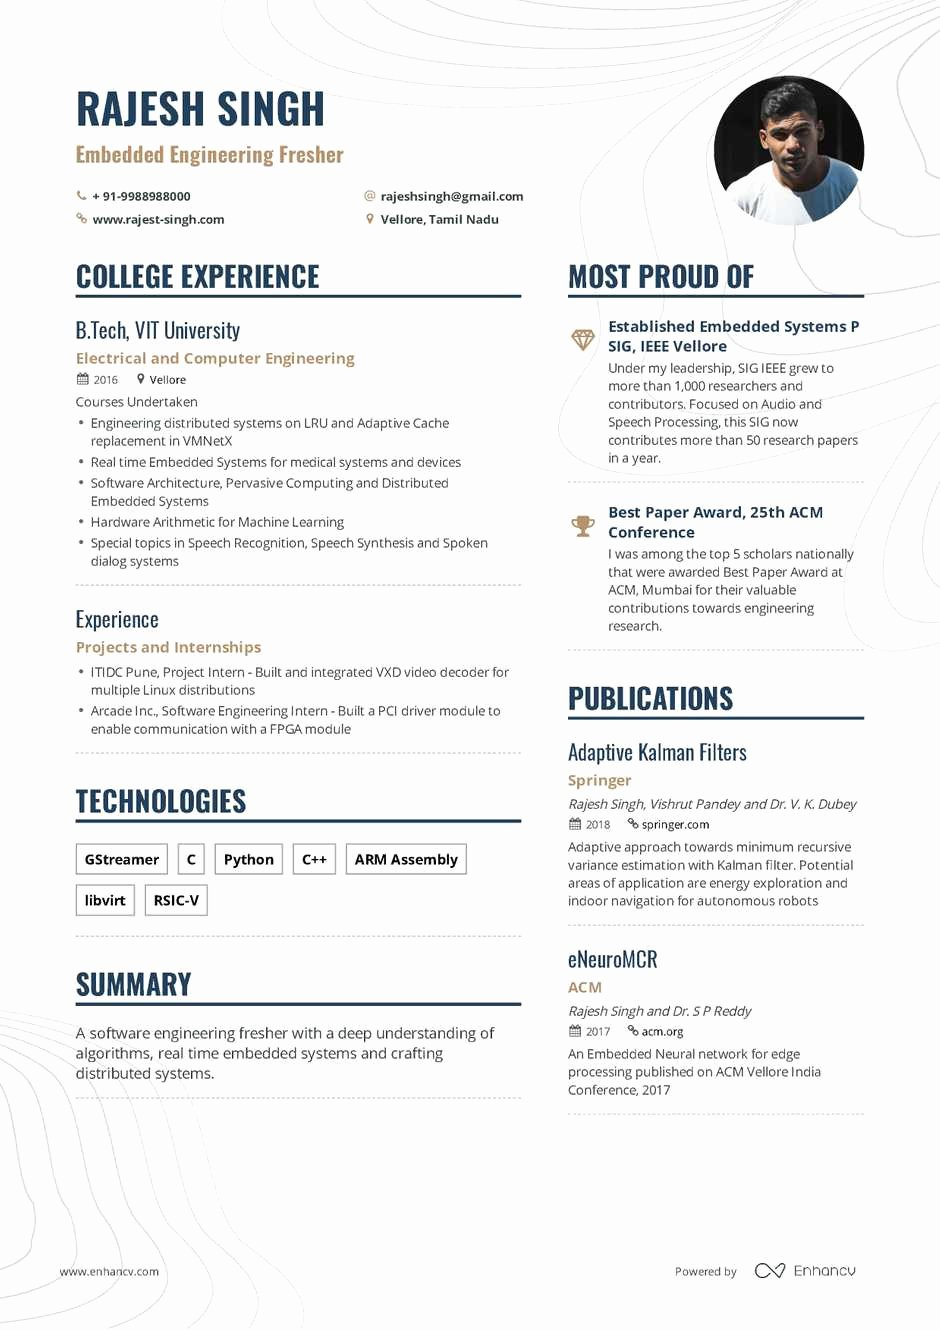 Sample Resume for Freshers New the Best 2019 Fresher Resume formats and Samples